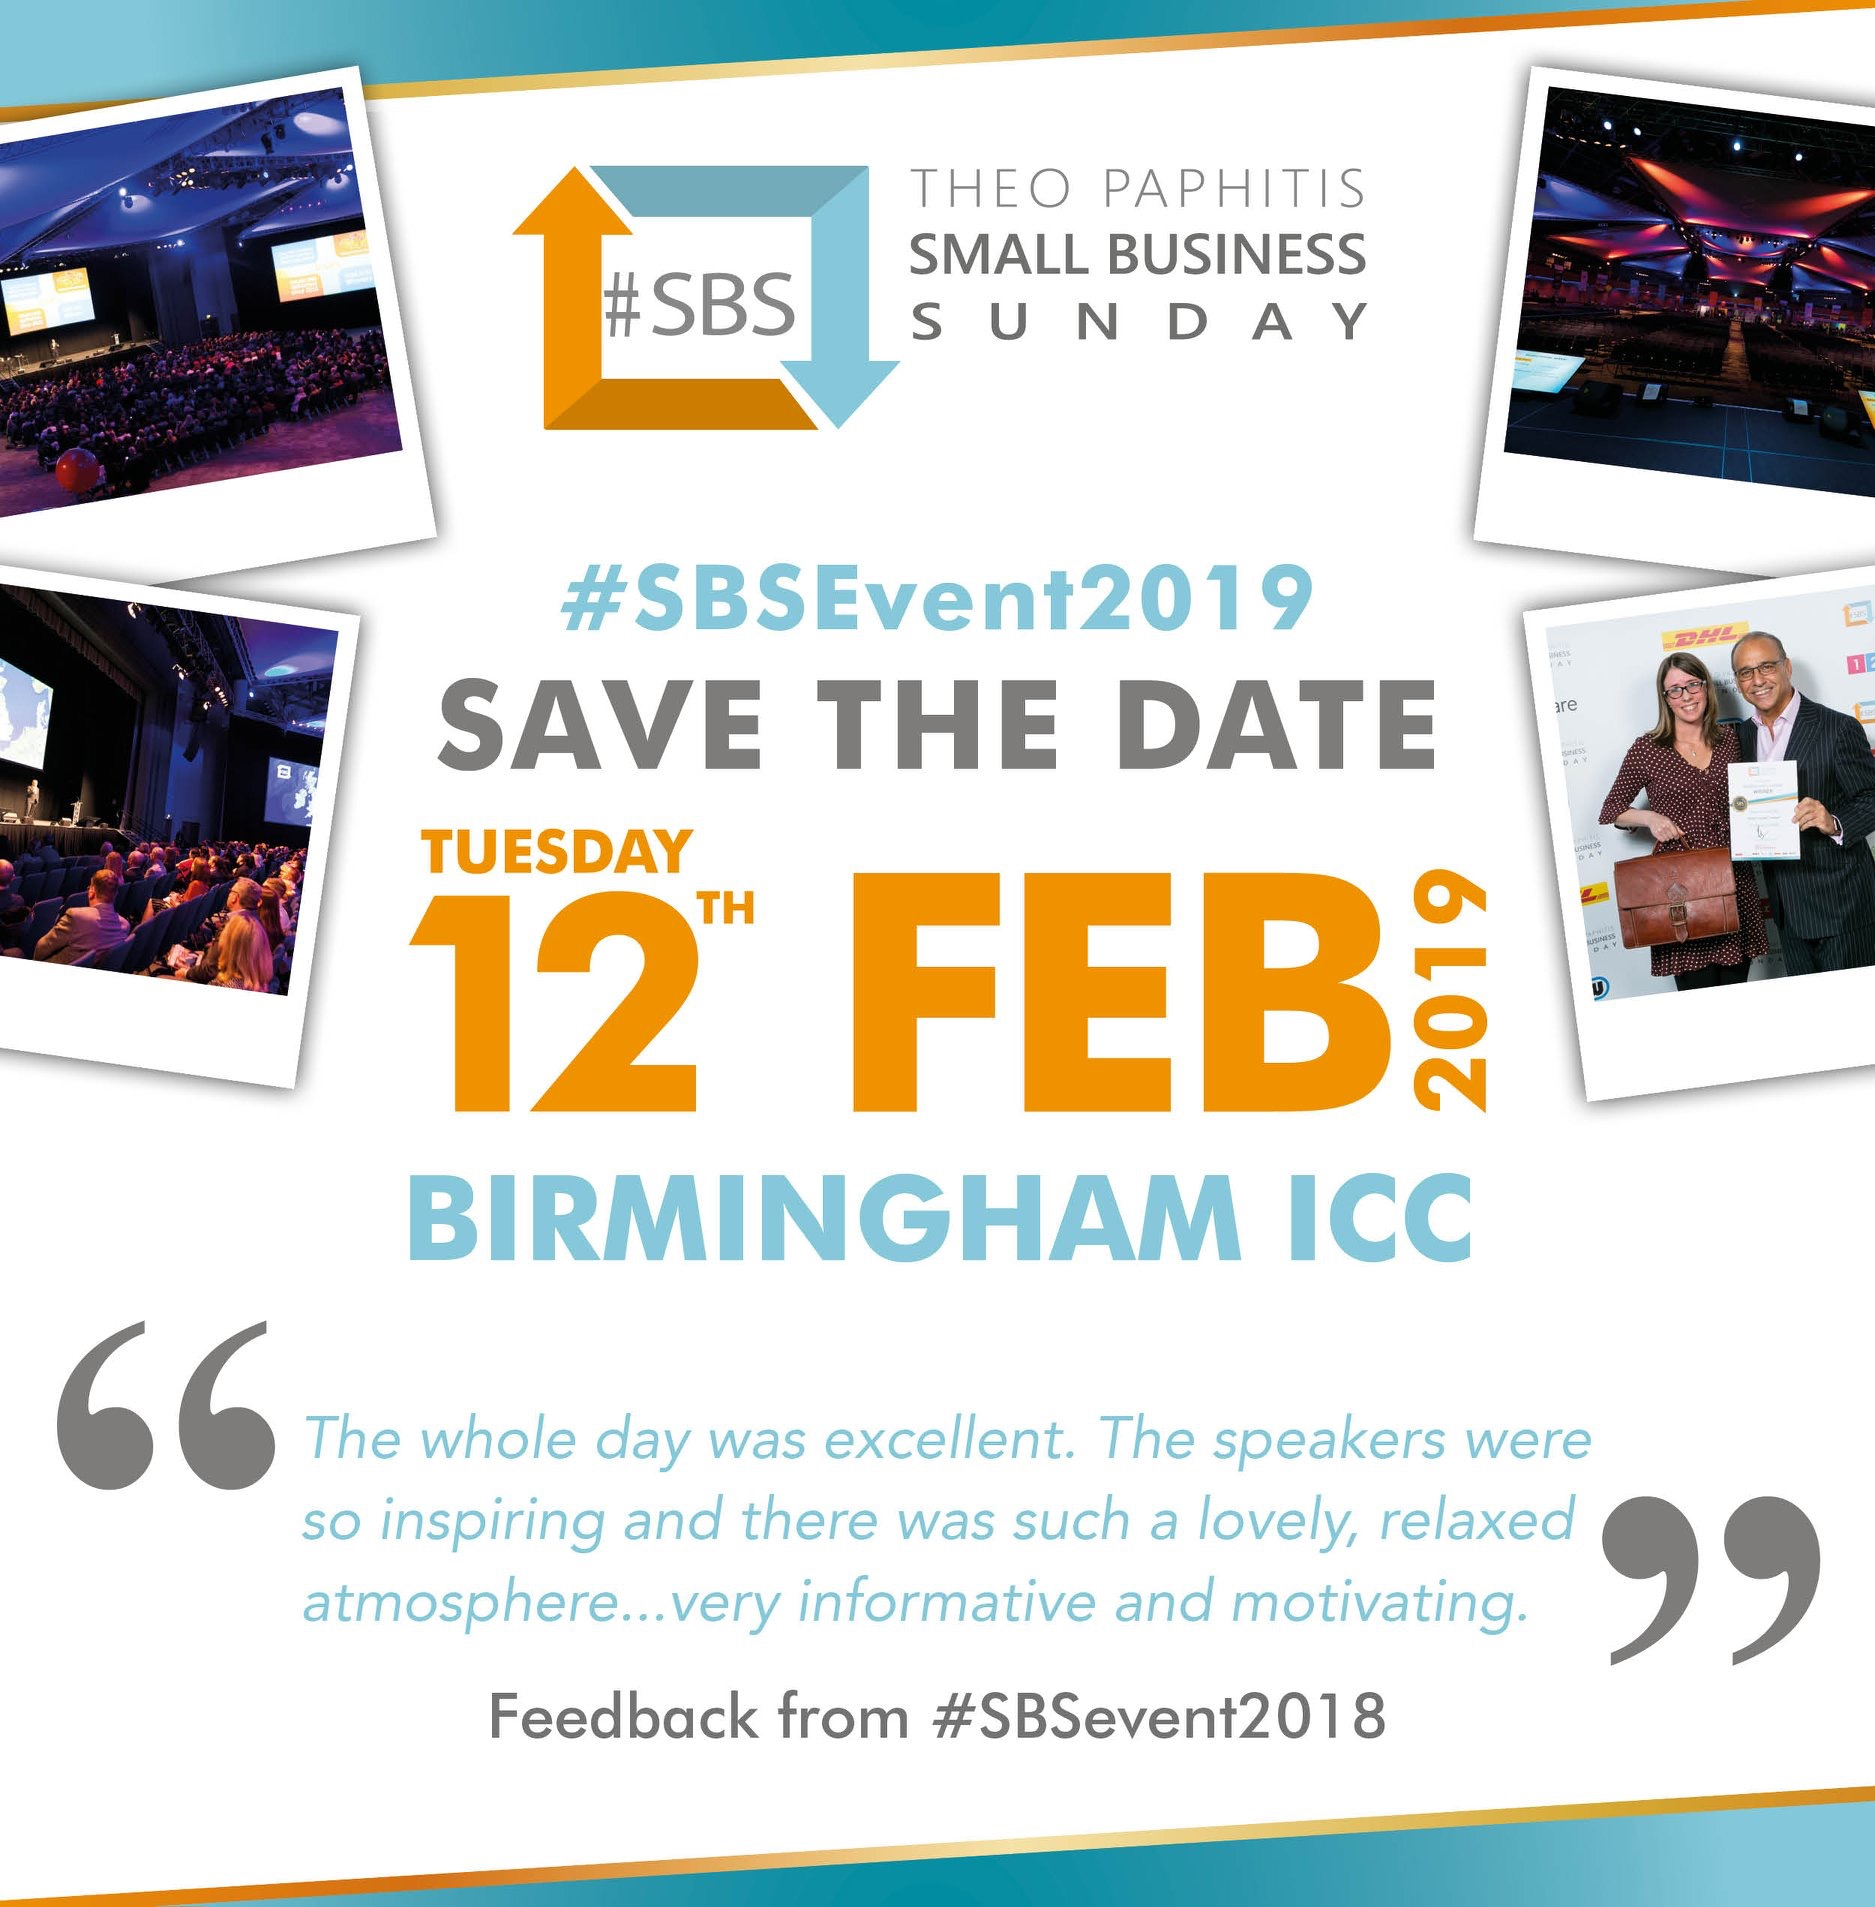 THEO PAPHITIS 2019 SMALL BUSINESS SUNDAY EVENT - Tuesday 12th February 2019(#SBS Winners only)More Details